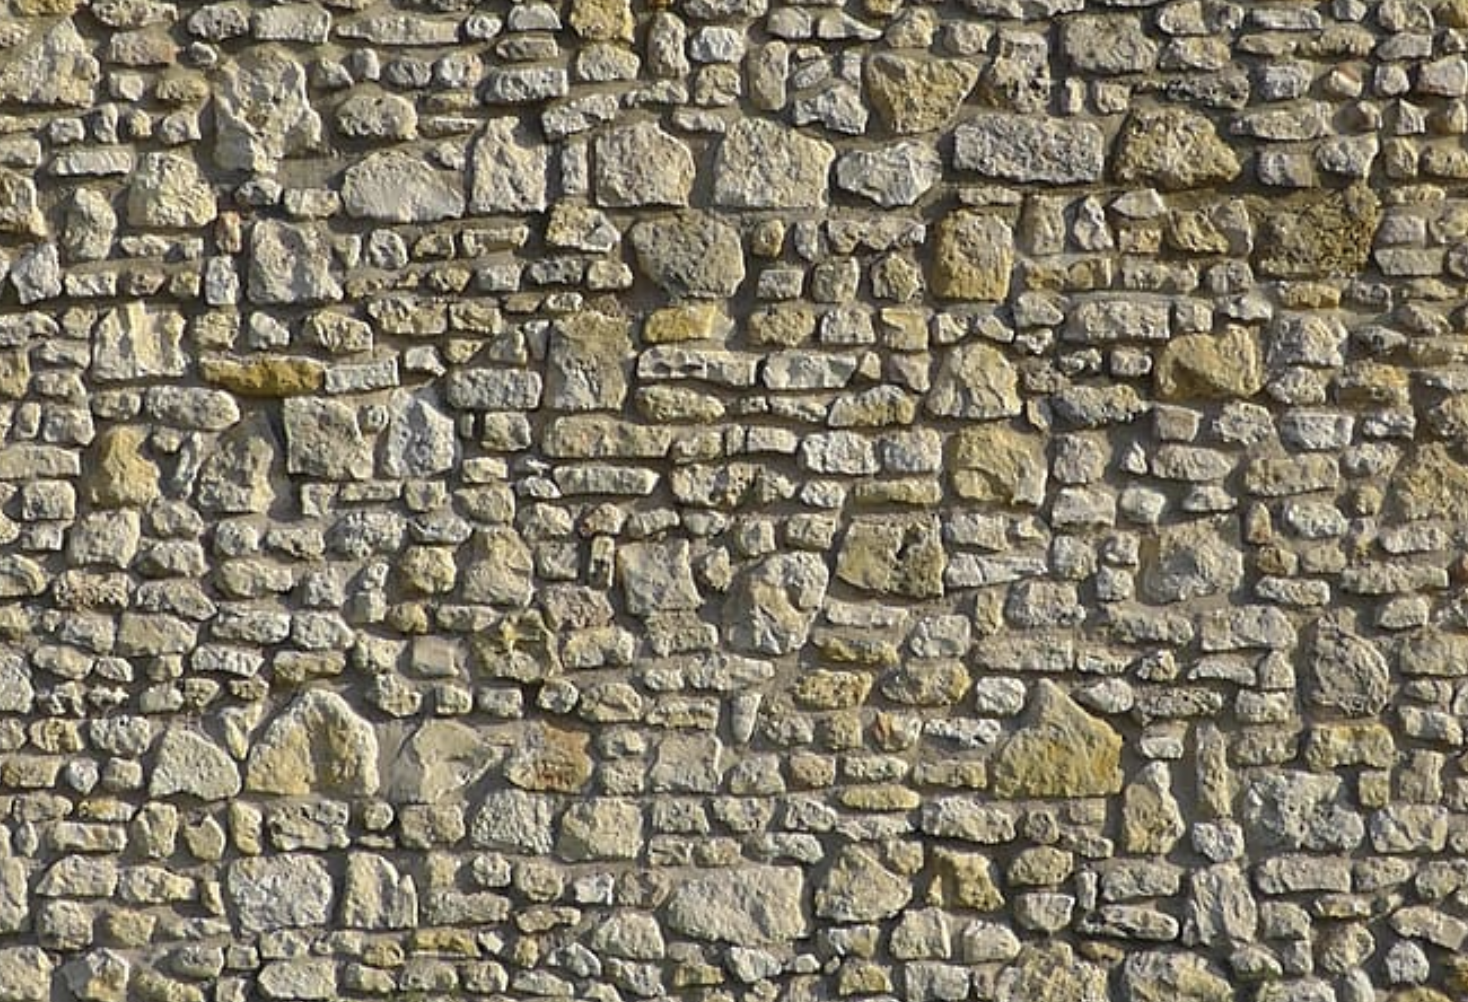 this image shows livermoer stone masonry